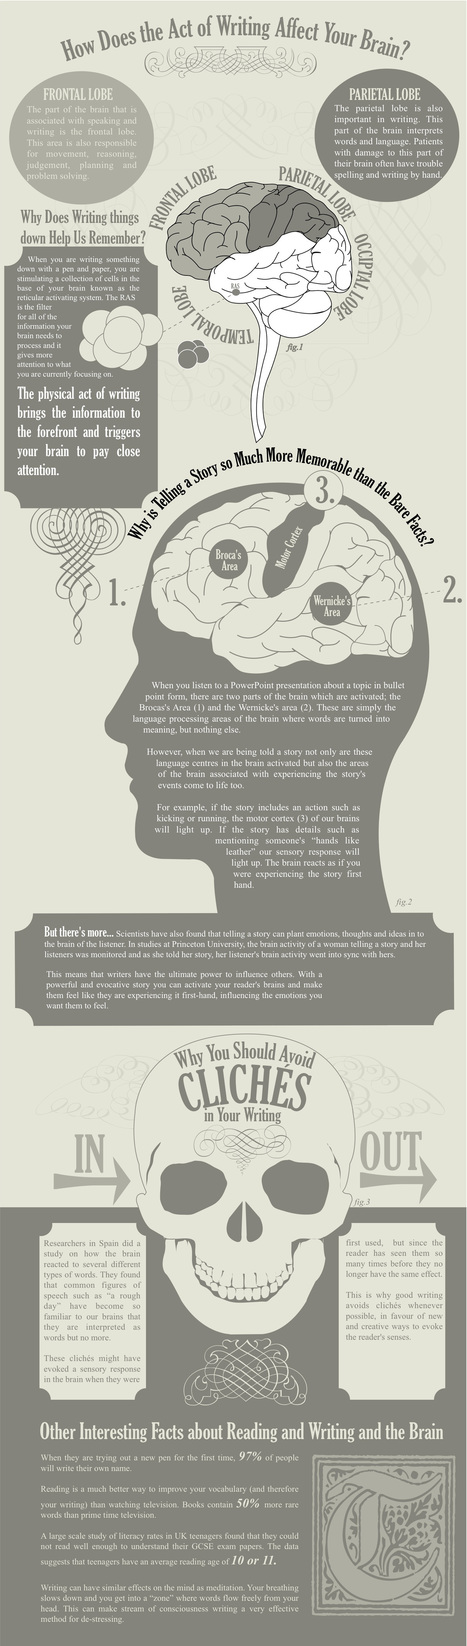 How Does Writing Affect Your Brain? - Neurorelay | Health Research | Scoop.it